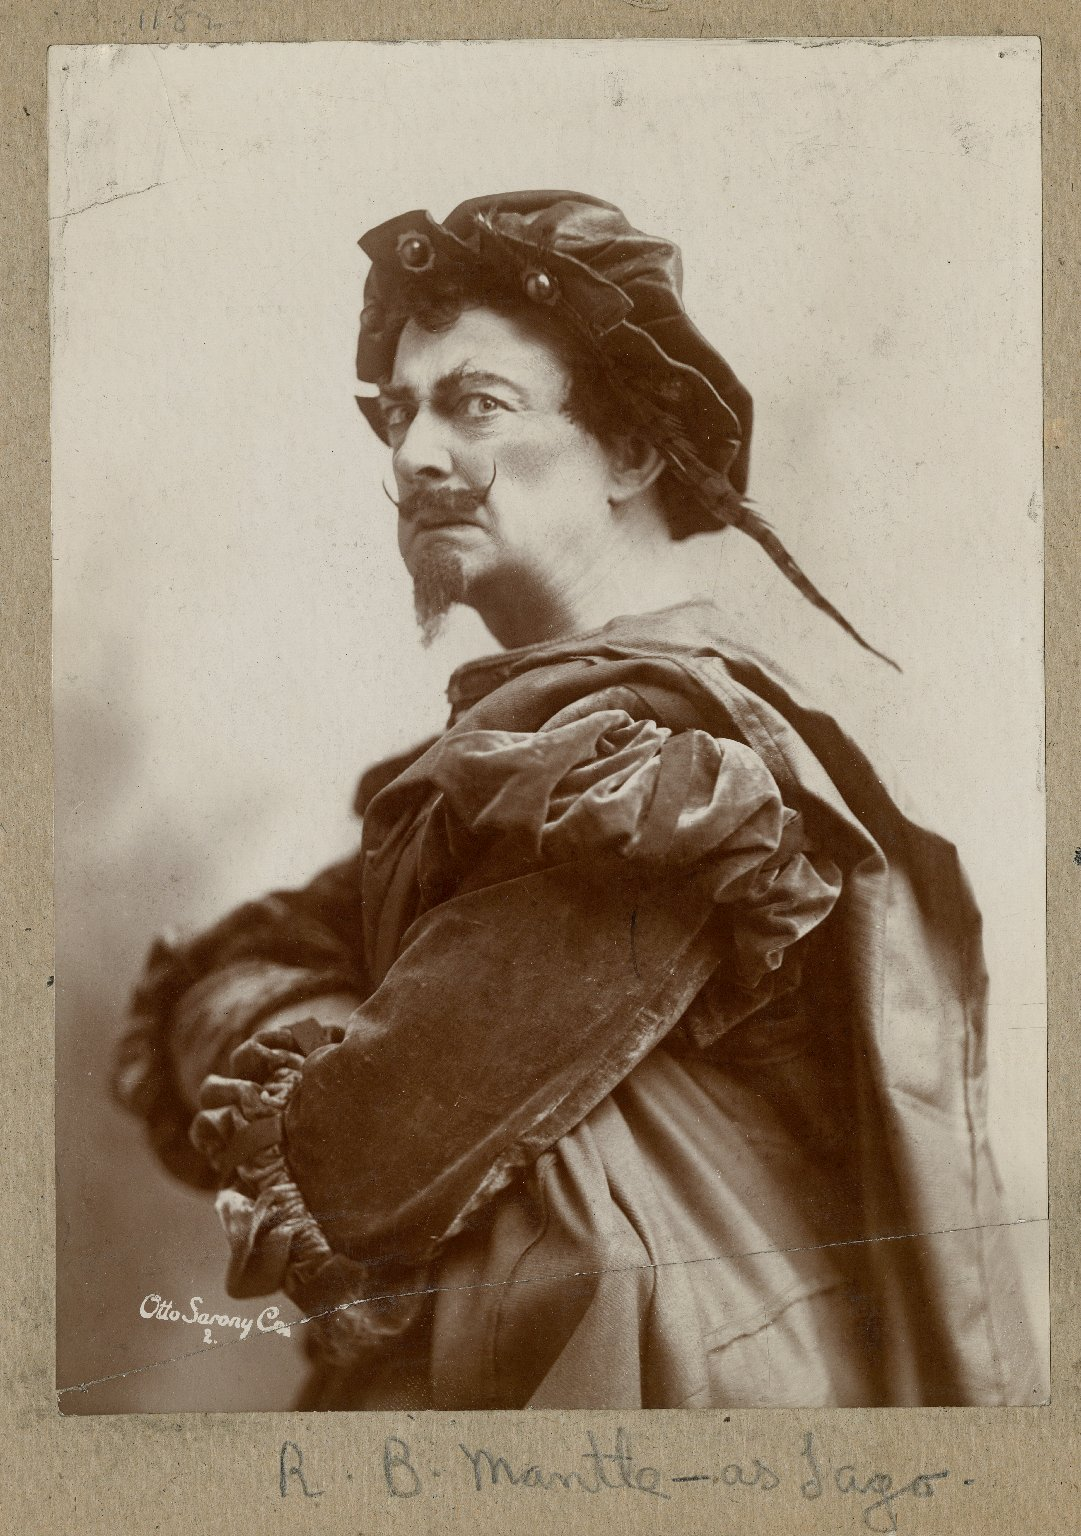 R.B. Mantell as Iago [in Shakespeare's Othello] [graphic] / Sarony.